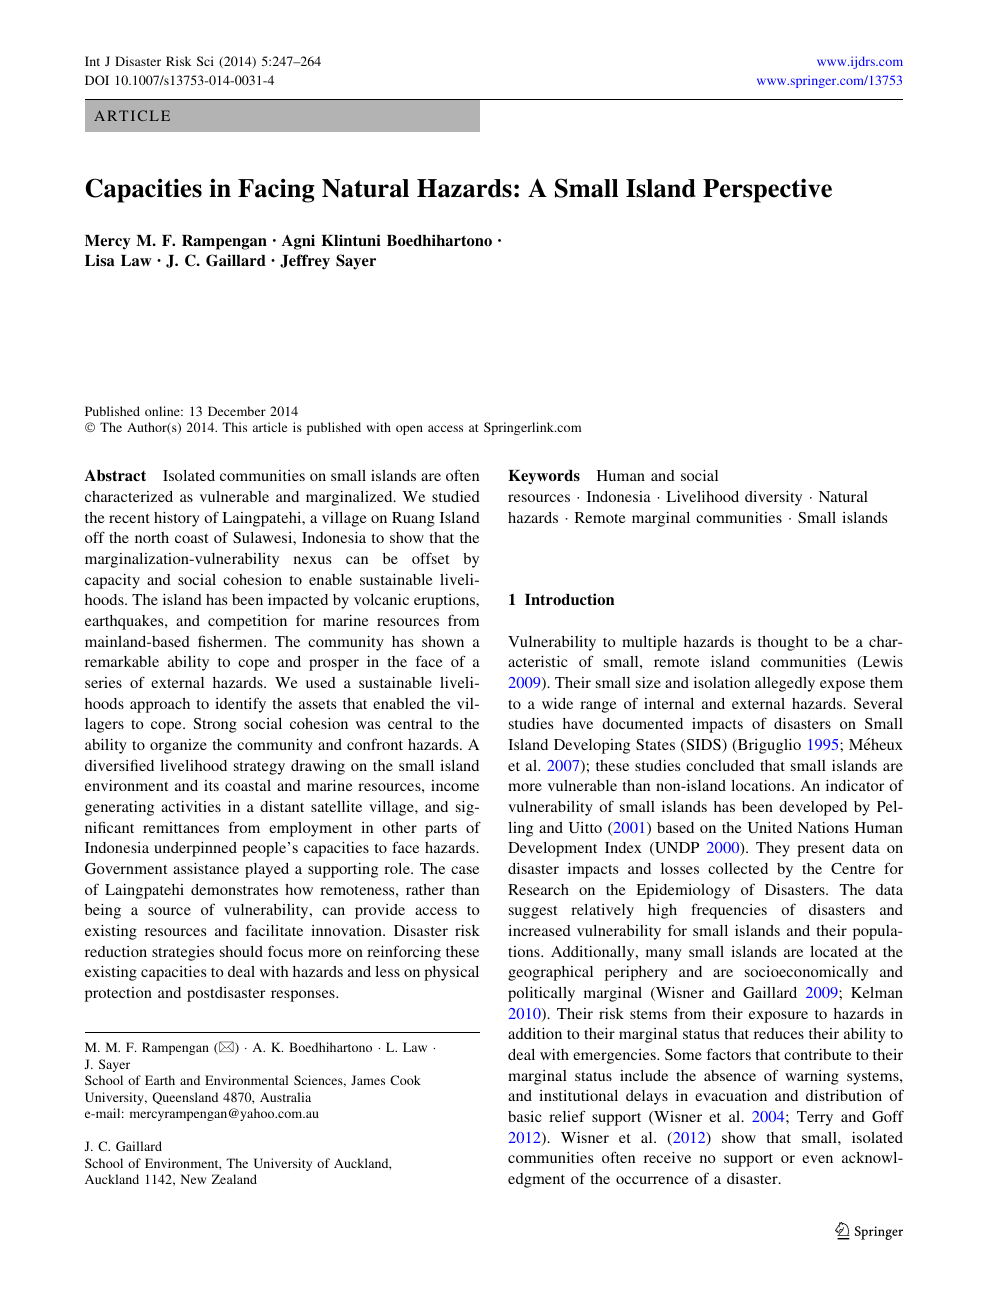 Capacities In Facing Natural Hazards A Small Island Perspective Topic Of Research Paper In Social And Economic Geography Download Scholarly Article Pdf And Read For Free On Cyberleninka Open Science Hub